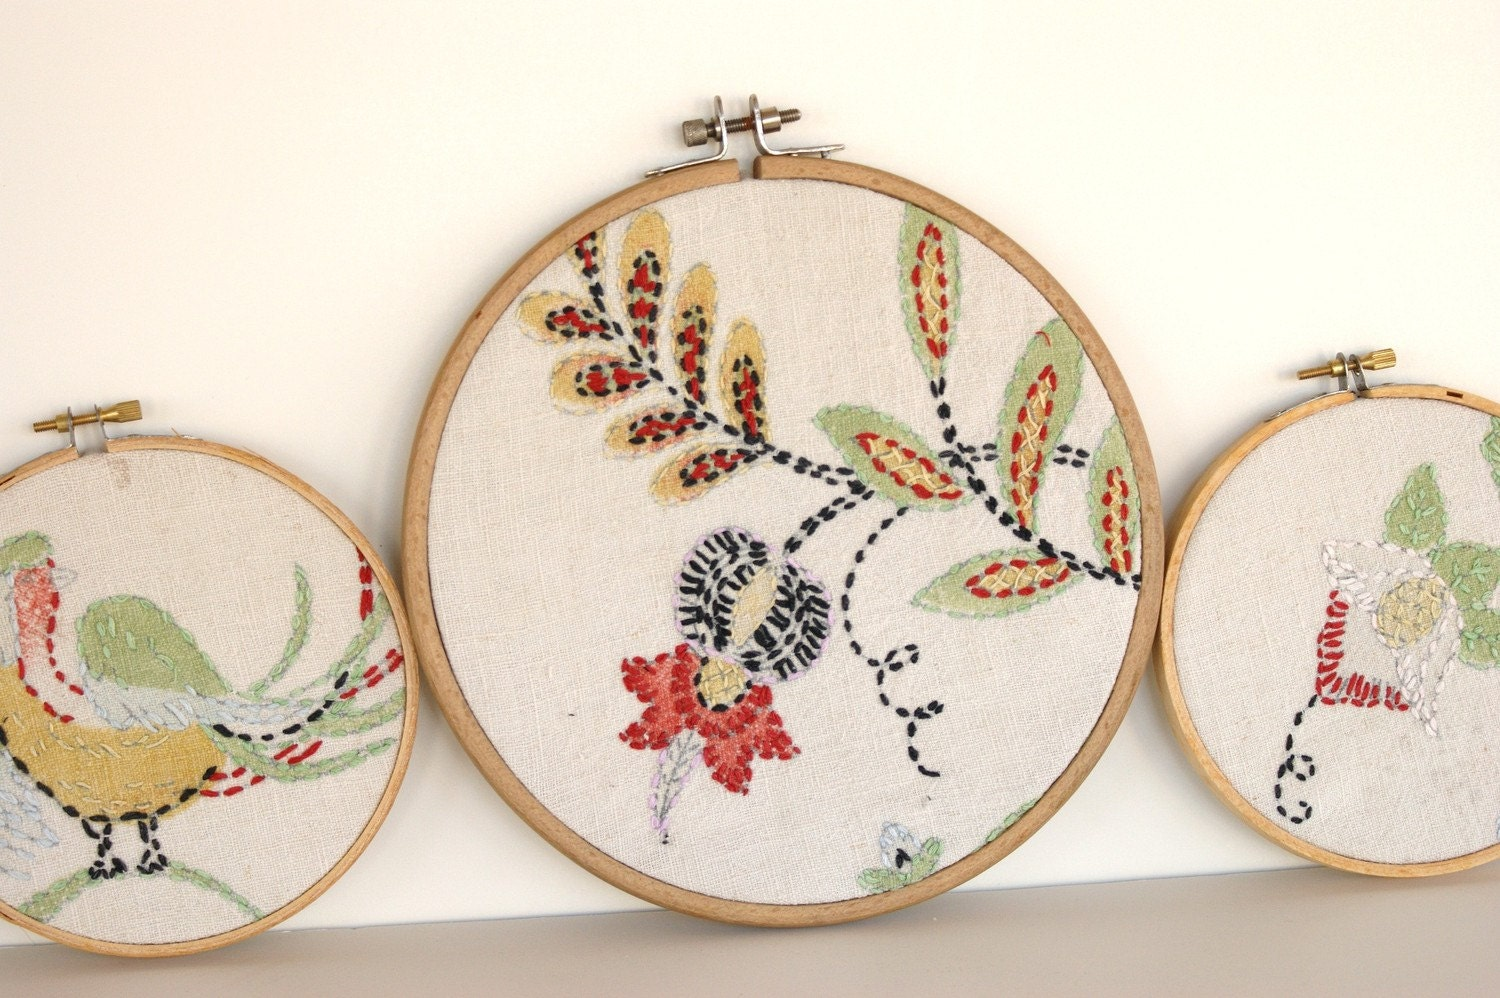 Vintage Set of 3 Embroidery Needlepoint Fabric Hoop Wall Hanging Cotton Flowers Bird Shabby Chic by LeeLeescloset on Etsy